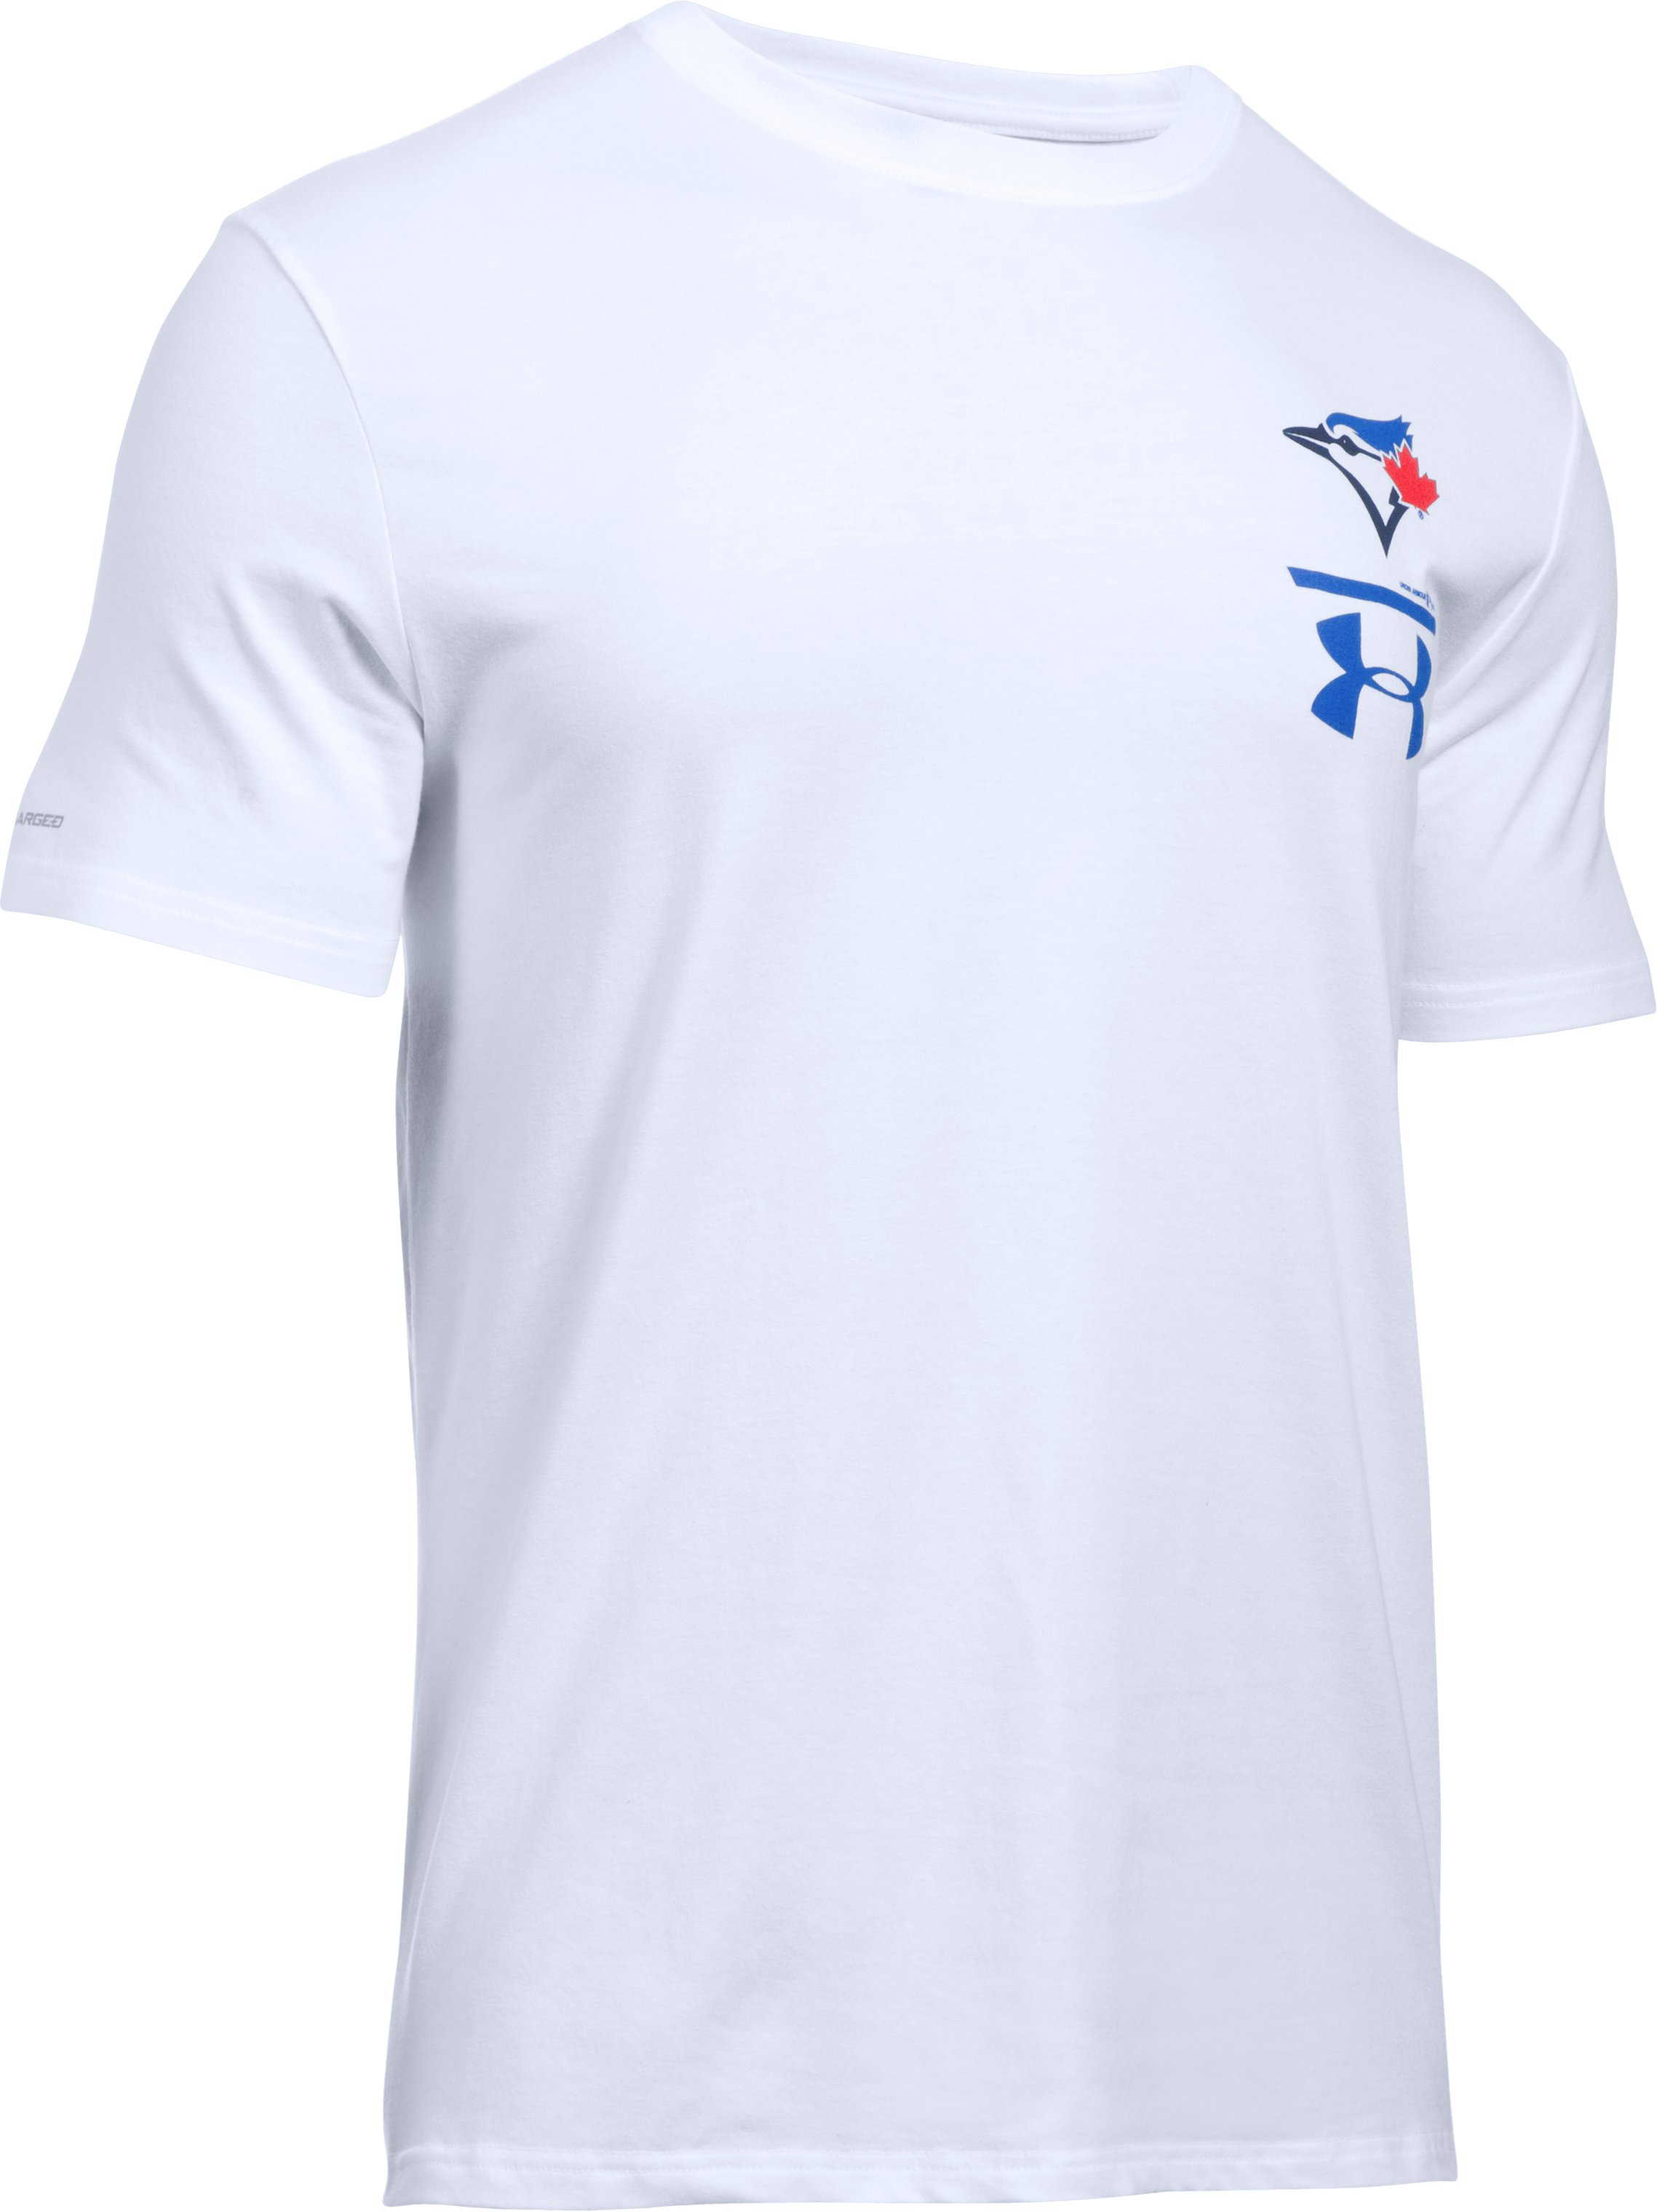 Men's Toronto Blue Jays Logo T-Shirt, White, undefined